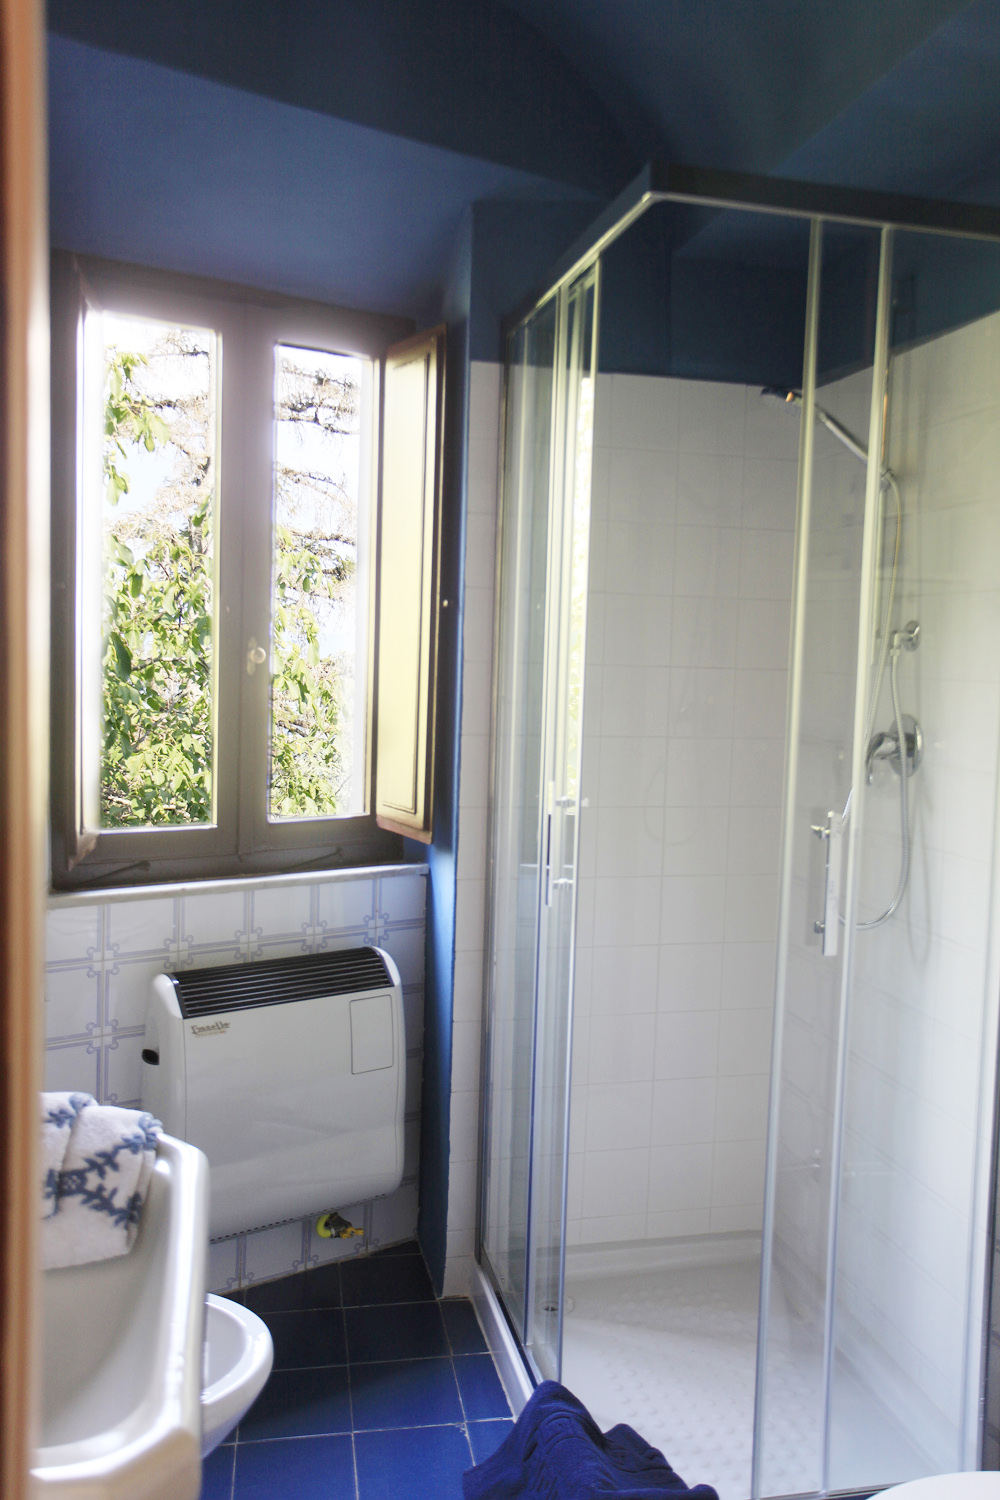 SHOWER ROOM, CASA DEL ENRICO